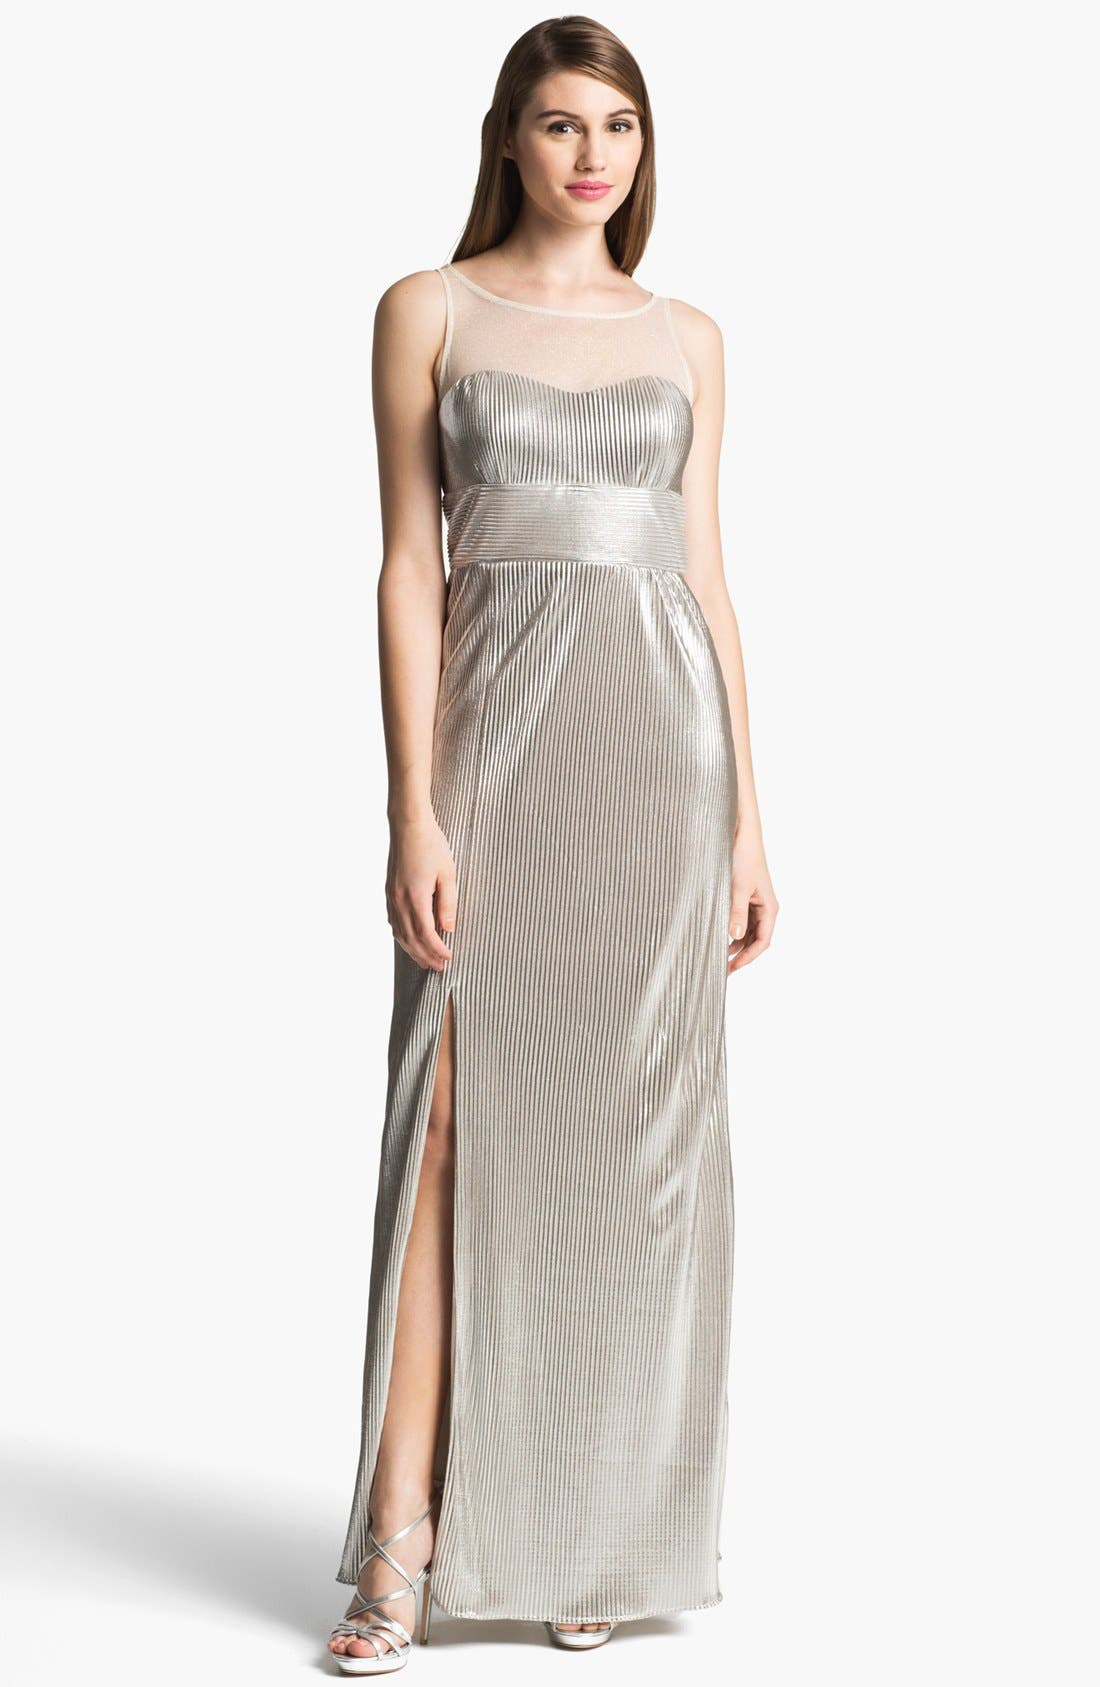 Main Image - Hailey by Adrianna Papell Metallic Illusion Yoke Gown (Online Only)